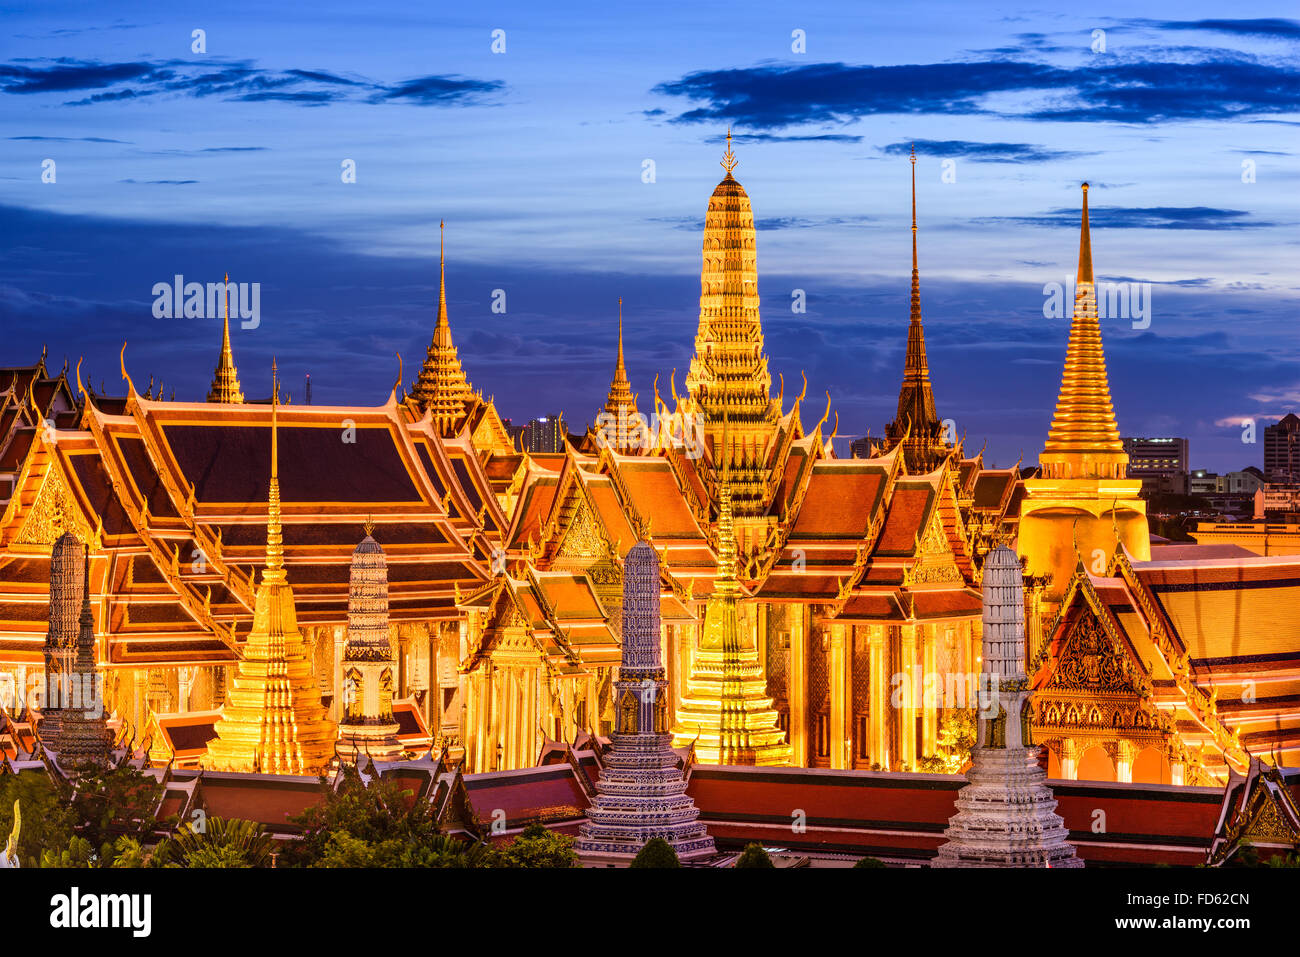 Bangkok, Thailand at Royal Palace and Temple of the Emerald Buddha at night. - Stock Image